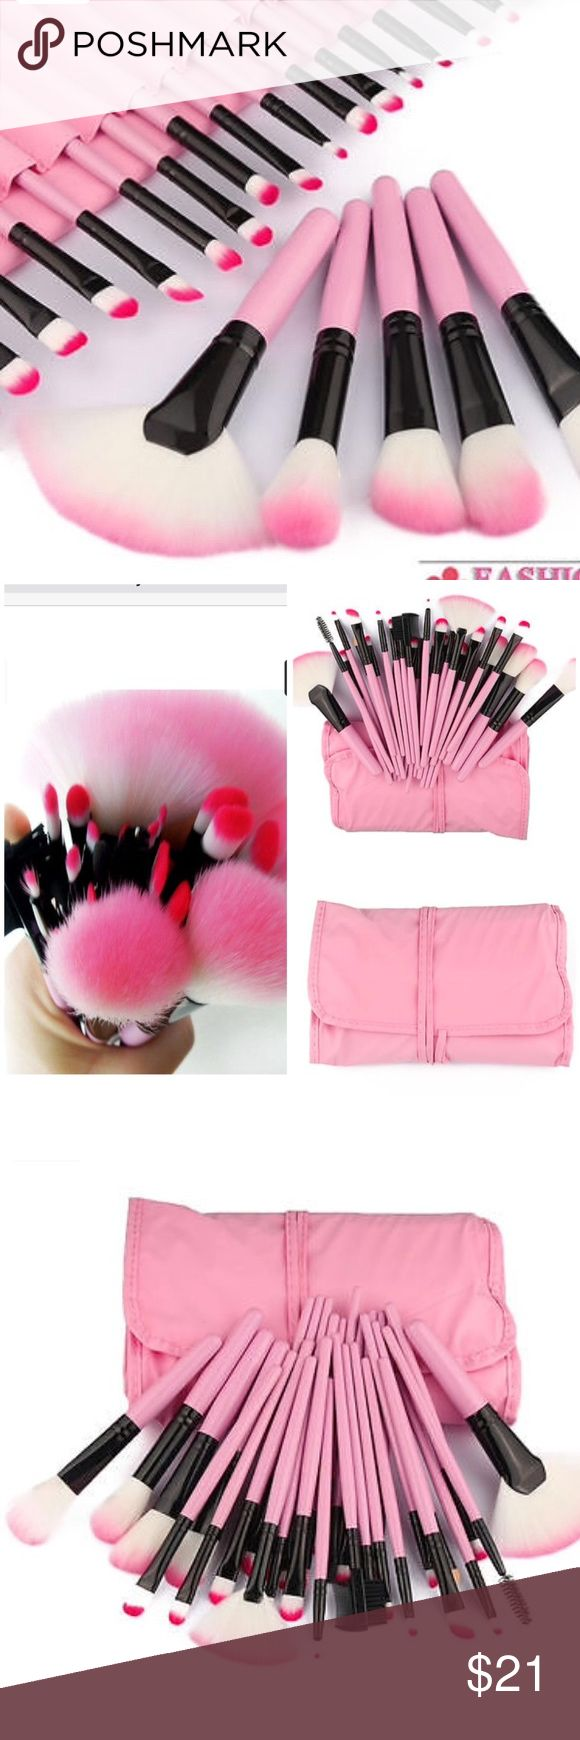 Selling this 32pcs Makeup Brush Set and Pouch Bag on Poshmark! My username is: ponylesles. #shopmycloset #poshmark #fashion #shopping #style #forsale #No Brand #Other